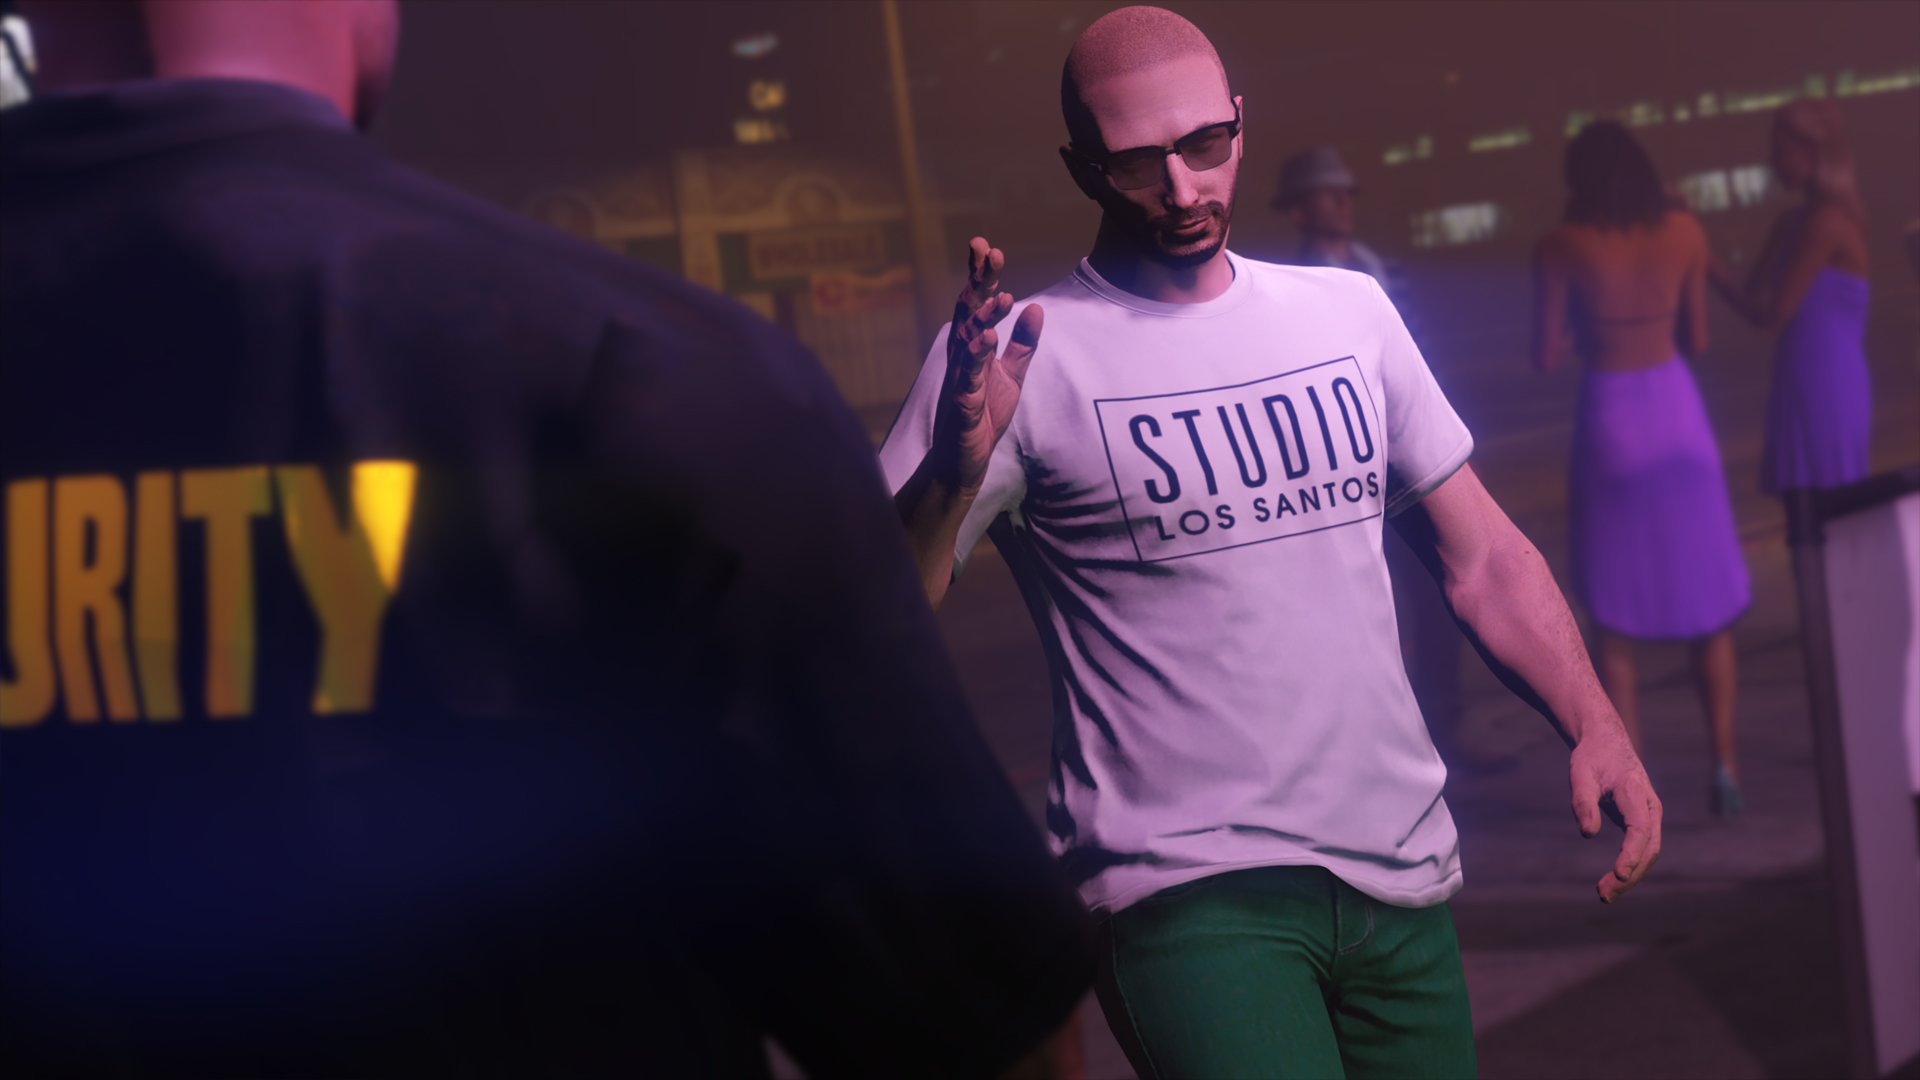 grand theft auto online after hours update new dj tale of us radio station music nightclub nightclubs